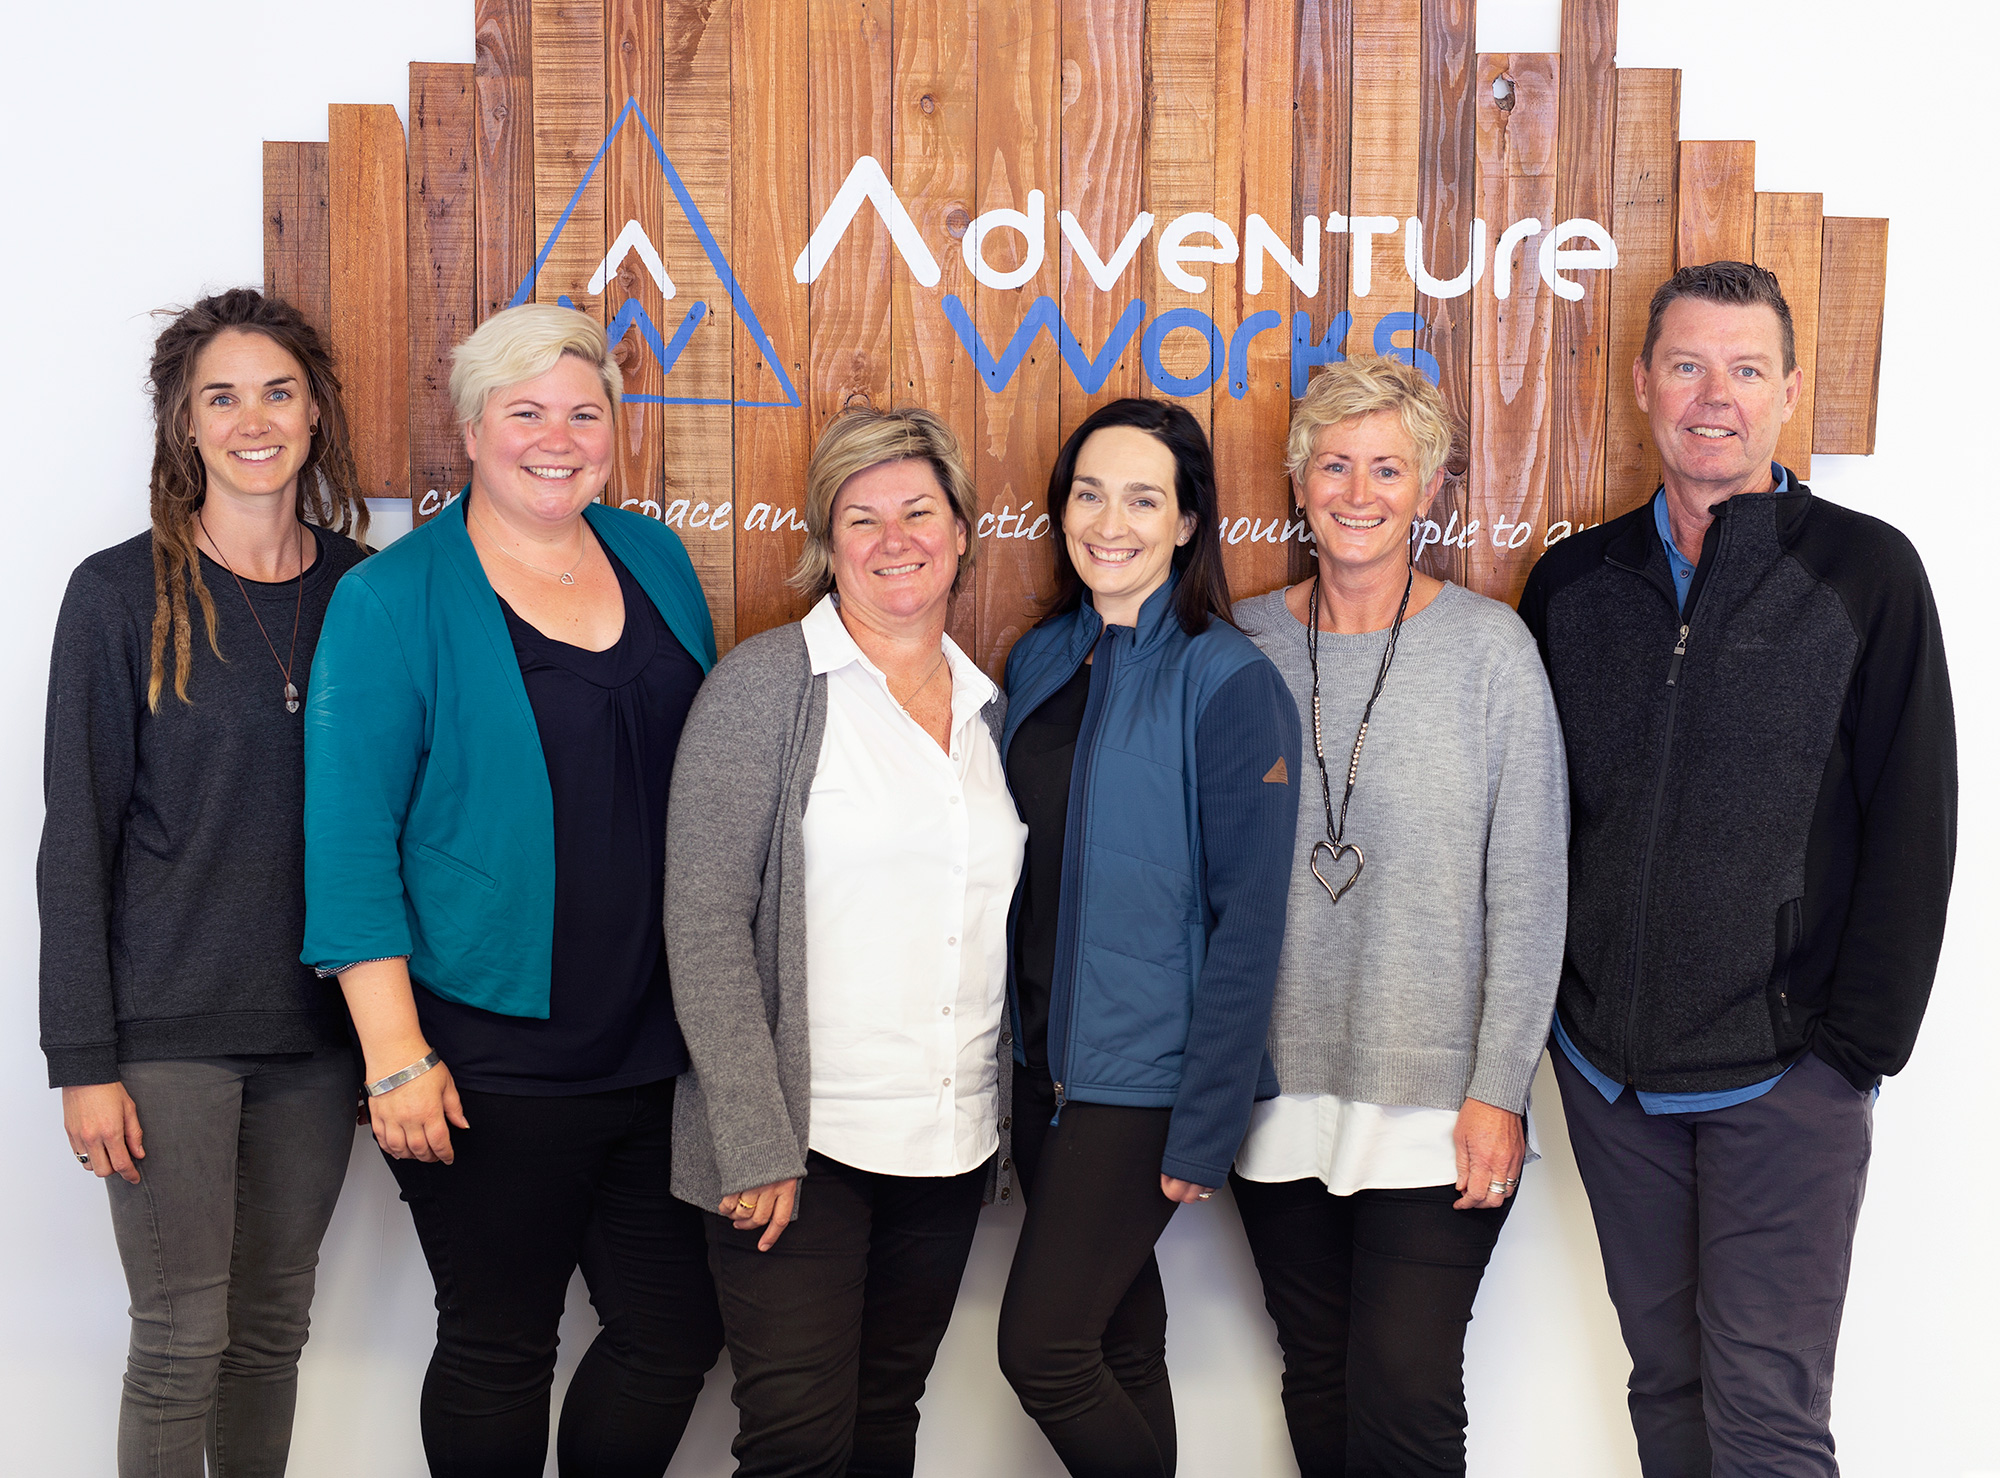 Leadership Skills | Our Tribe | Adventure Works WA. Our amazing tribe of facilitators embody everything we stand for & we know you're going to love them. #leadershipskills #adventureworks #adventure